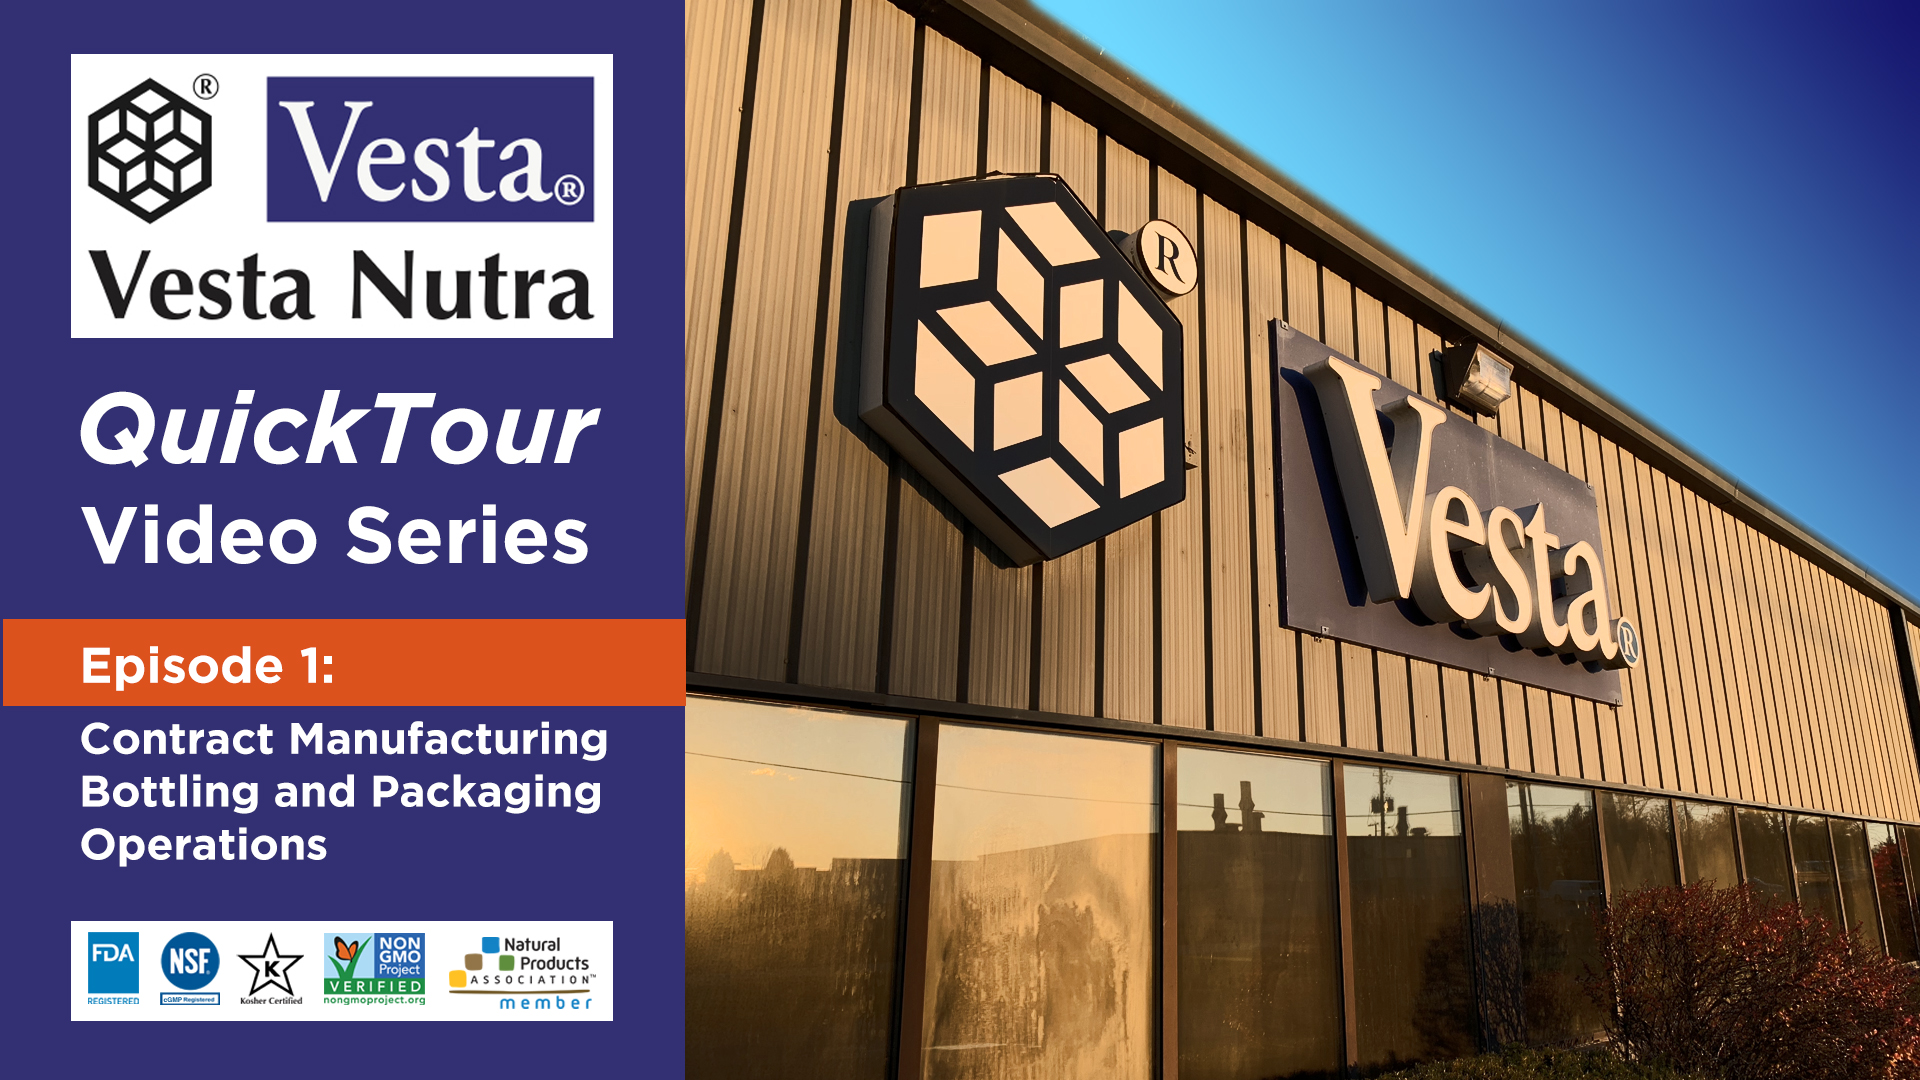 Vesta Nutra QuickTour: Bottling and Packaging operations